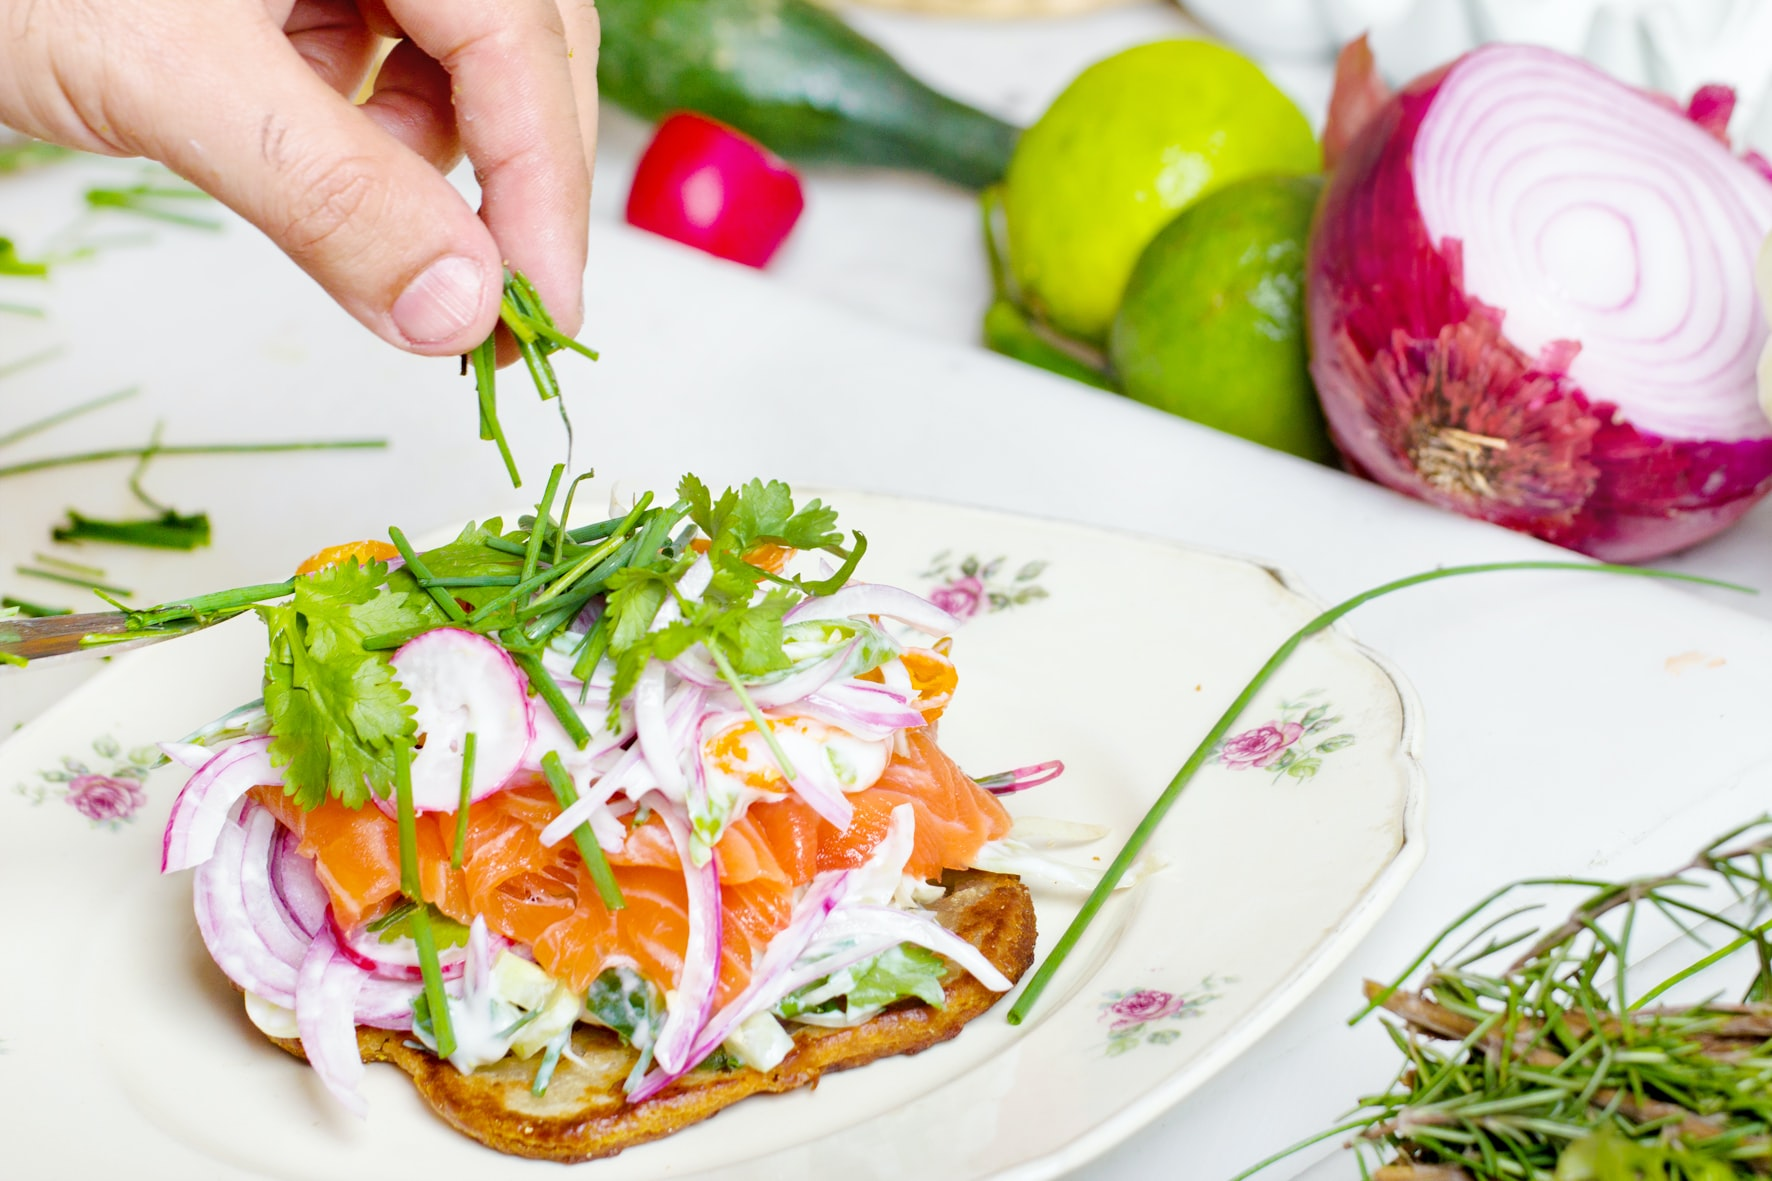 Hand sprinkling fresh dill on toast with salmon, onions, and vegetables